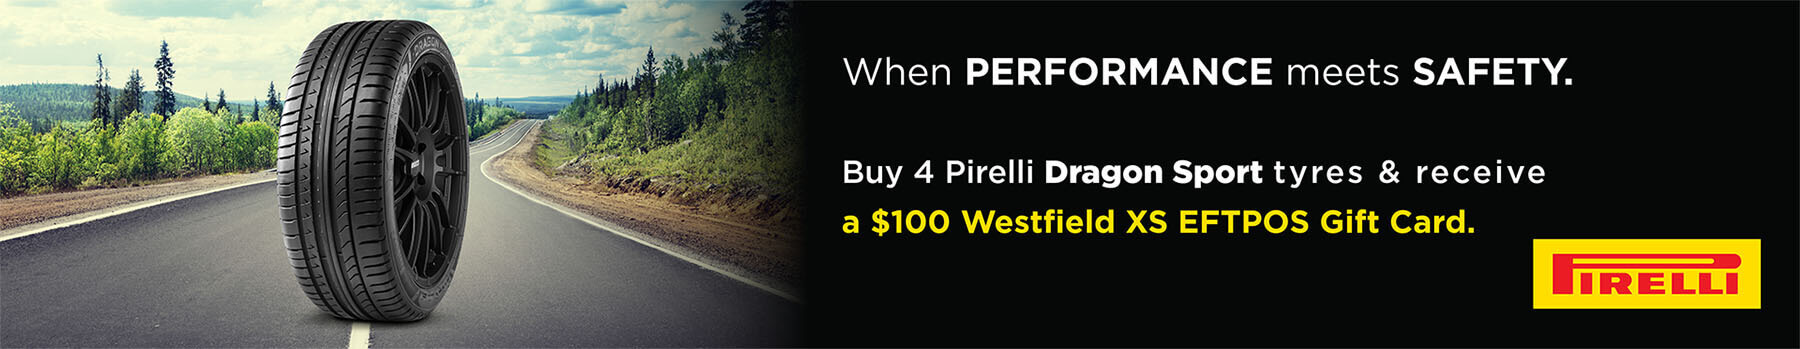 Buy 4 Pirelli Dragon Sport tyres and recieve a $100 Gift Card